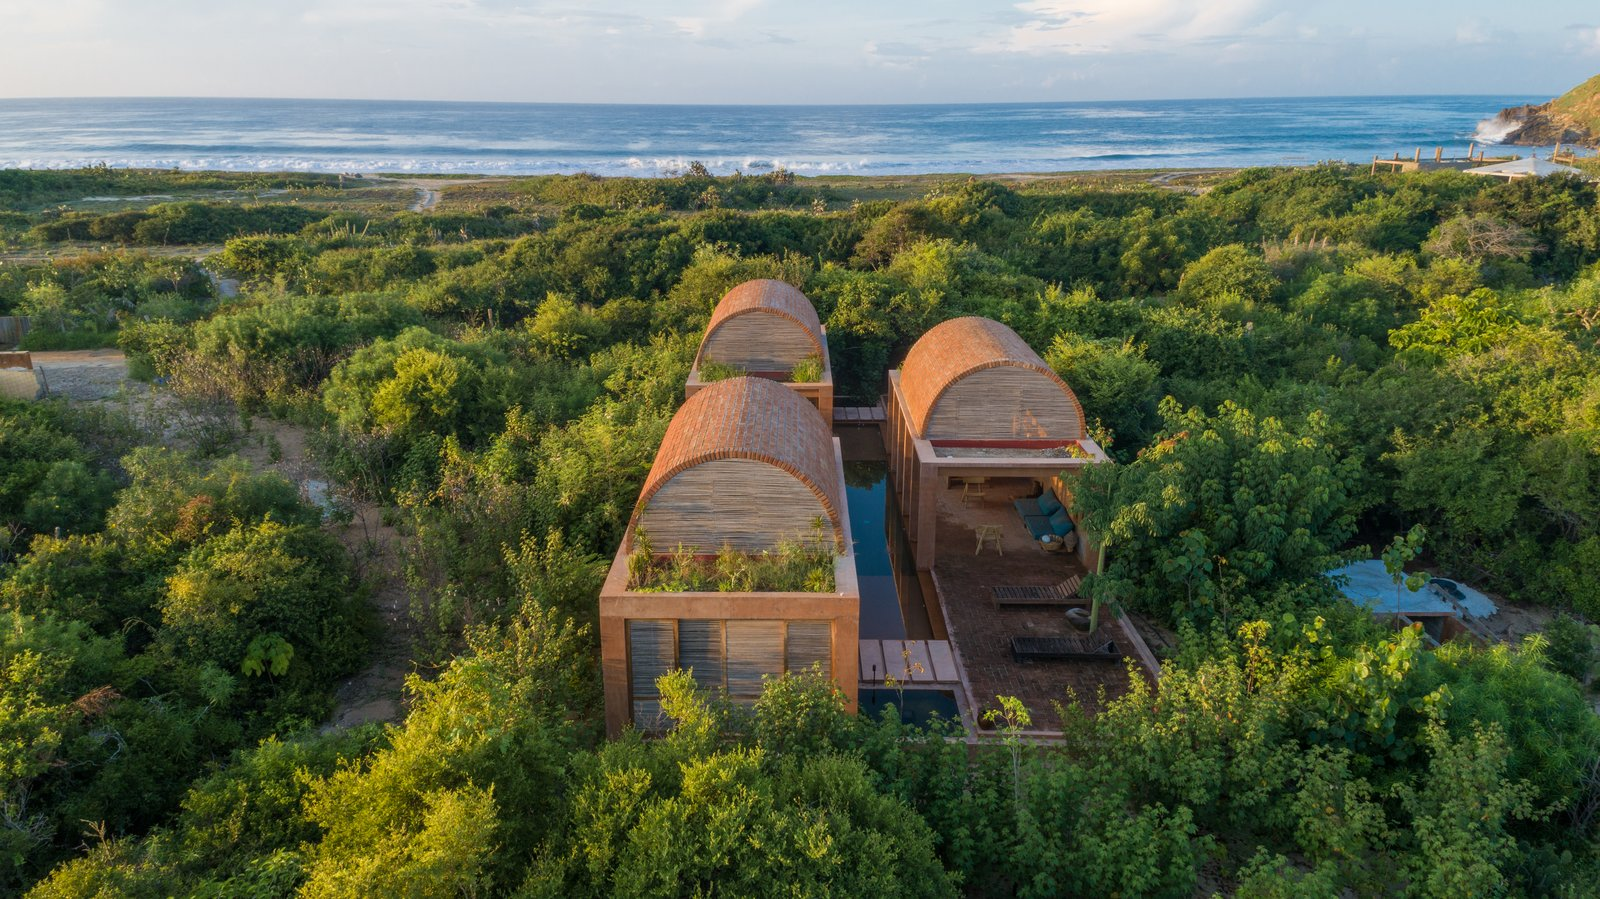 A vaulted brick house features three different arched roofs set inside a dense forest. In the distance you can see the ocean.